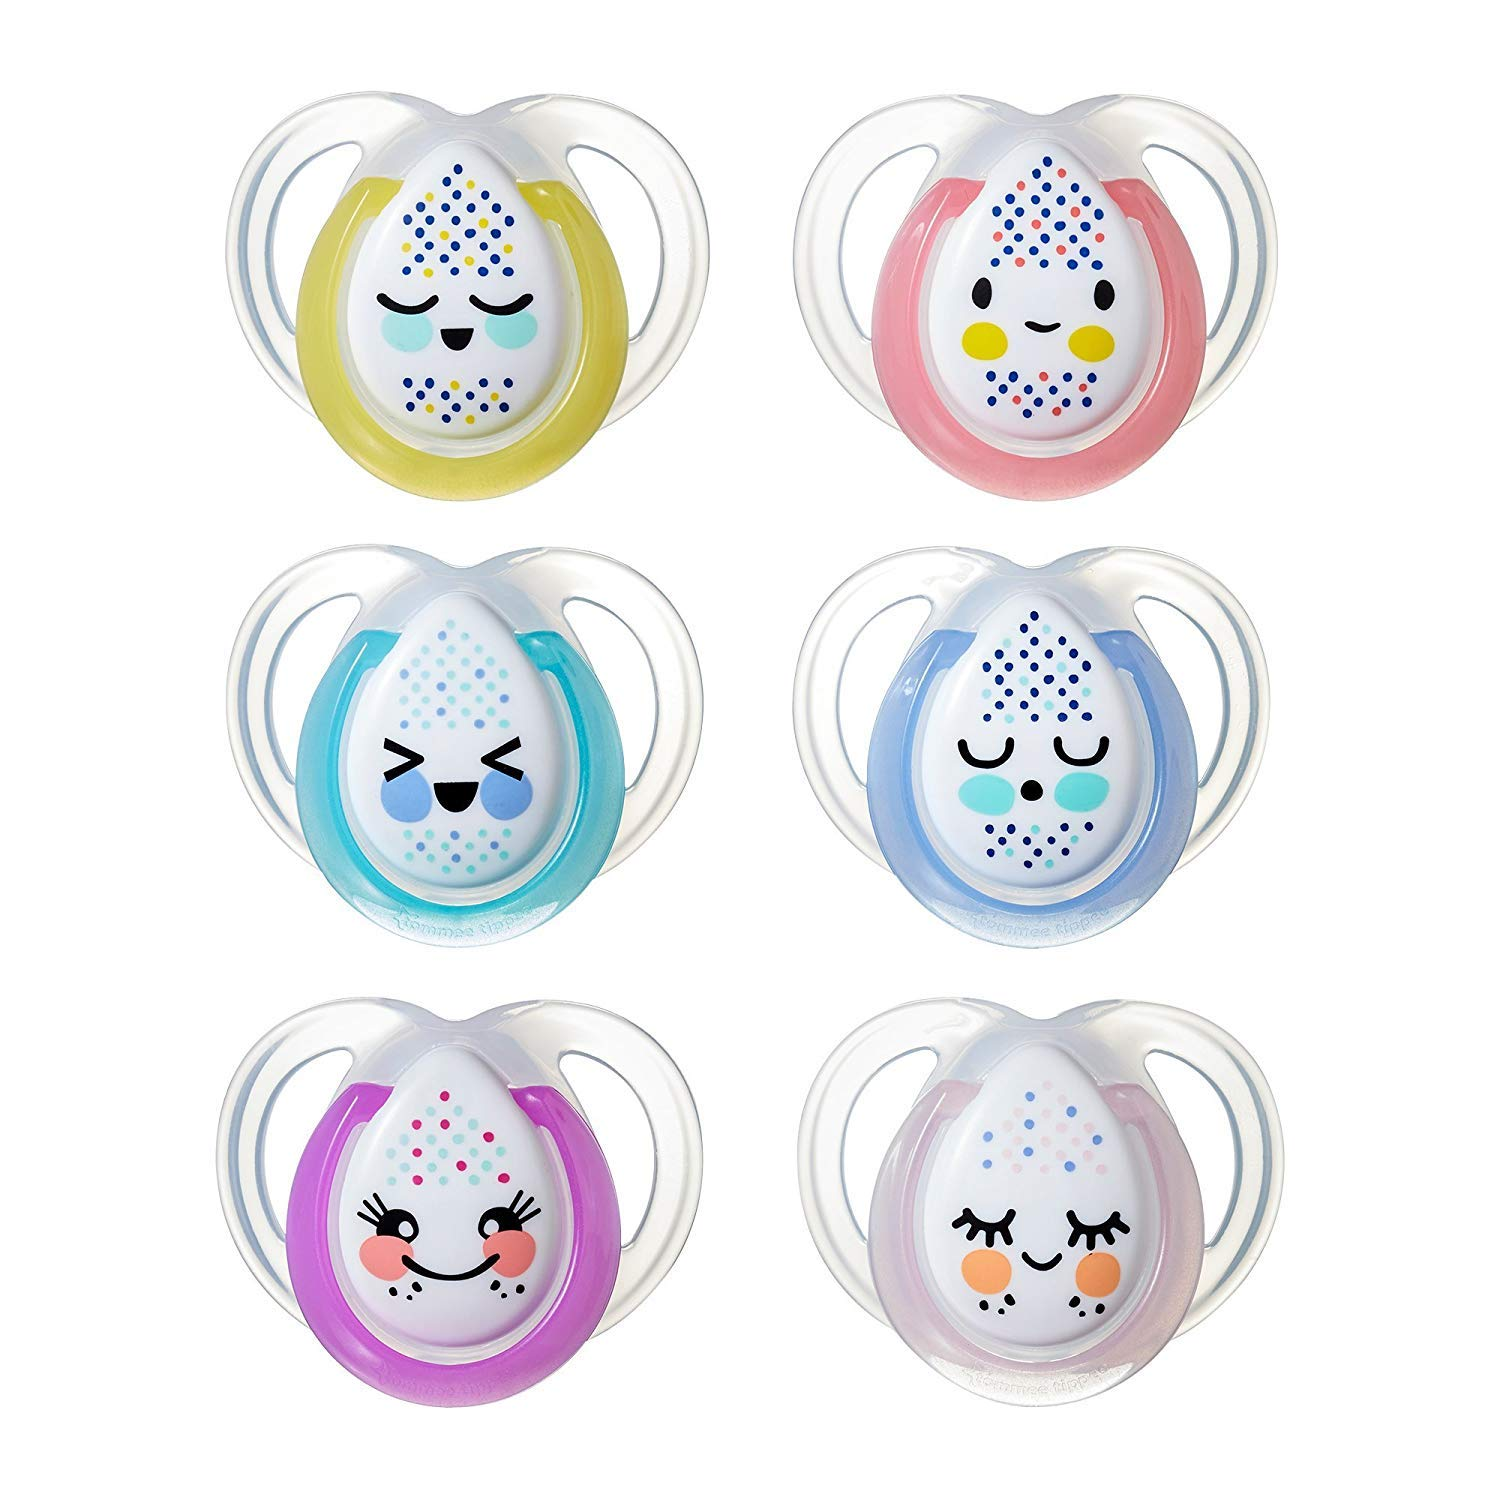 Tommee Tippee Closer to Nature Night Time Newborn Baby Pacifier, 0-6 months - 2 pack (Colors May Vary) 533066